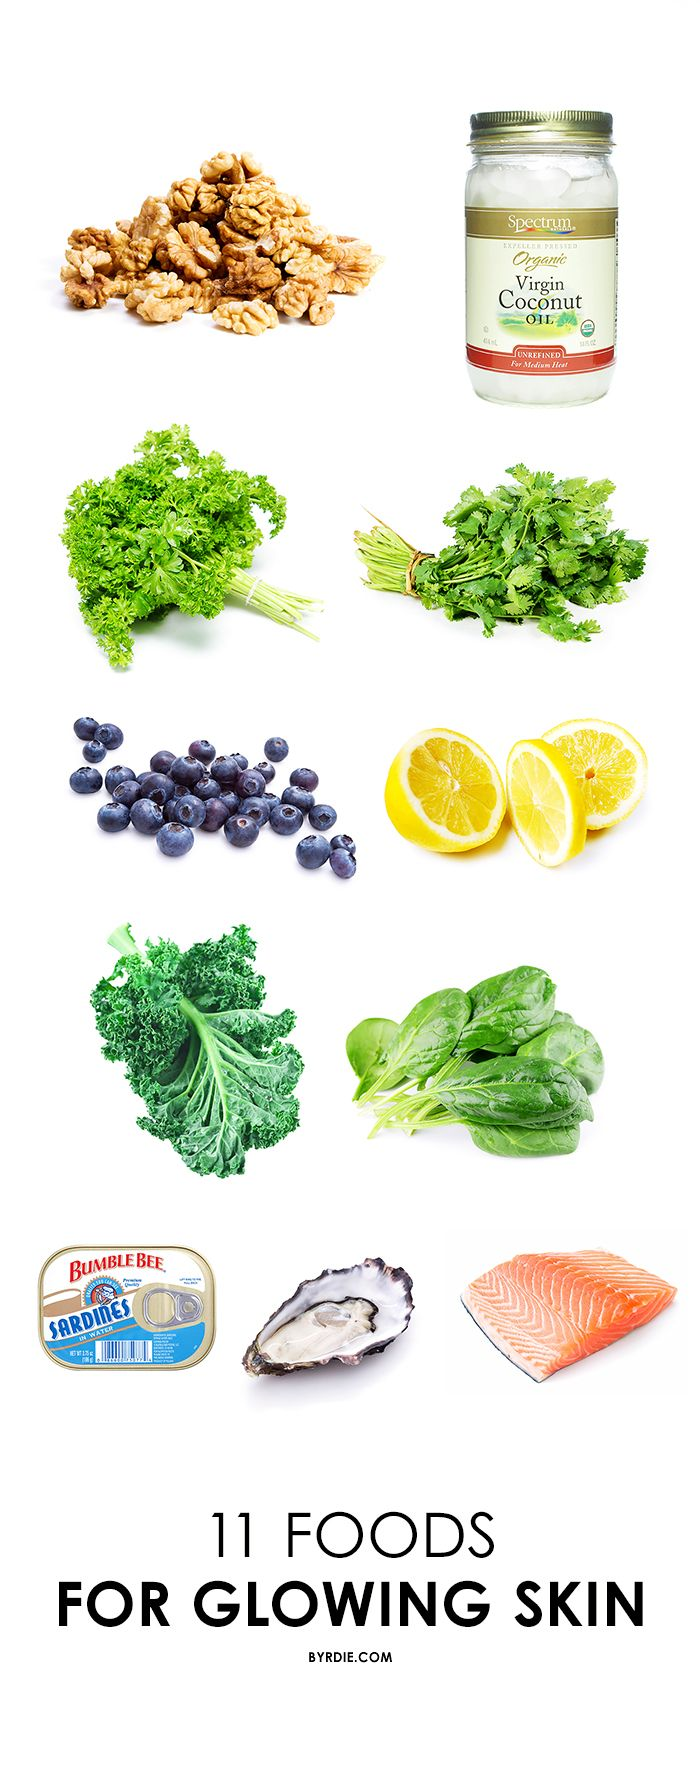 11 foods for glowing skin